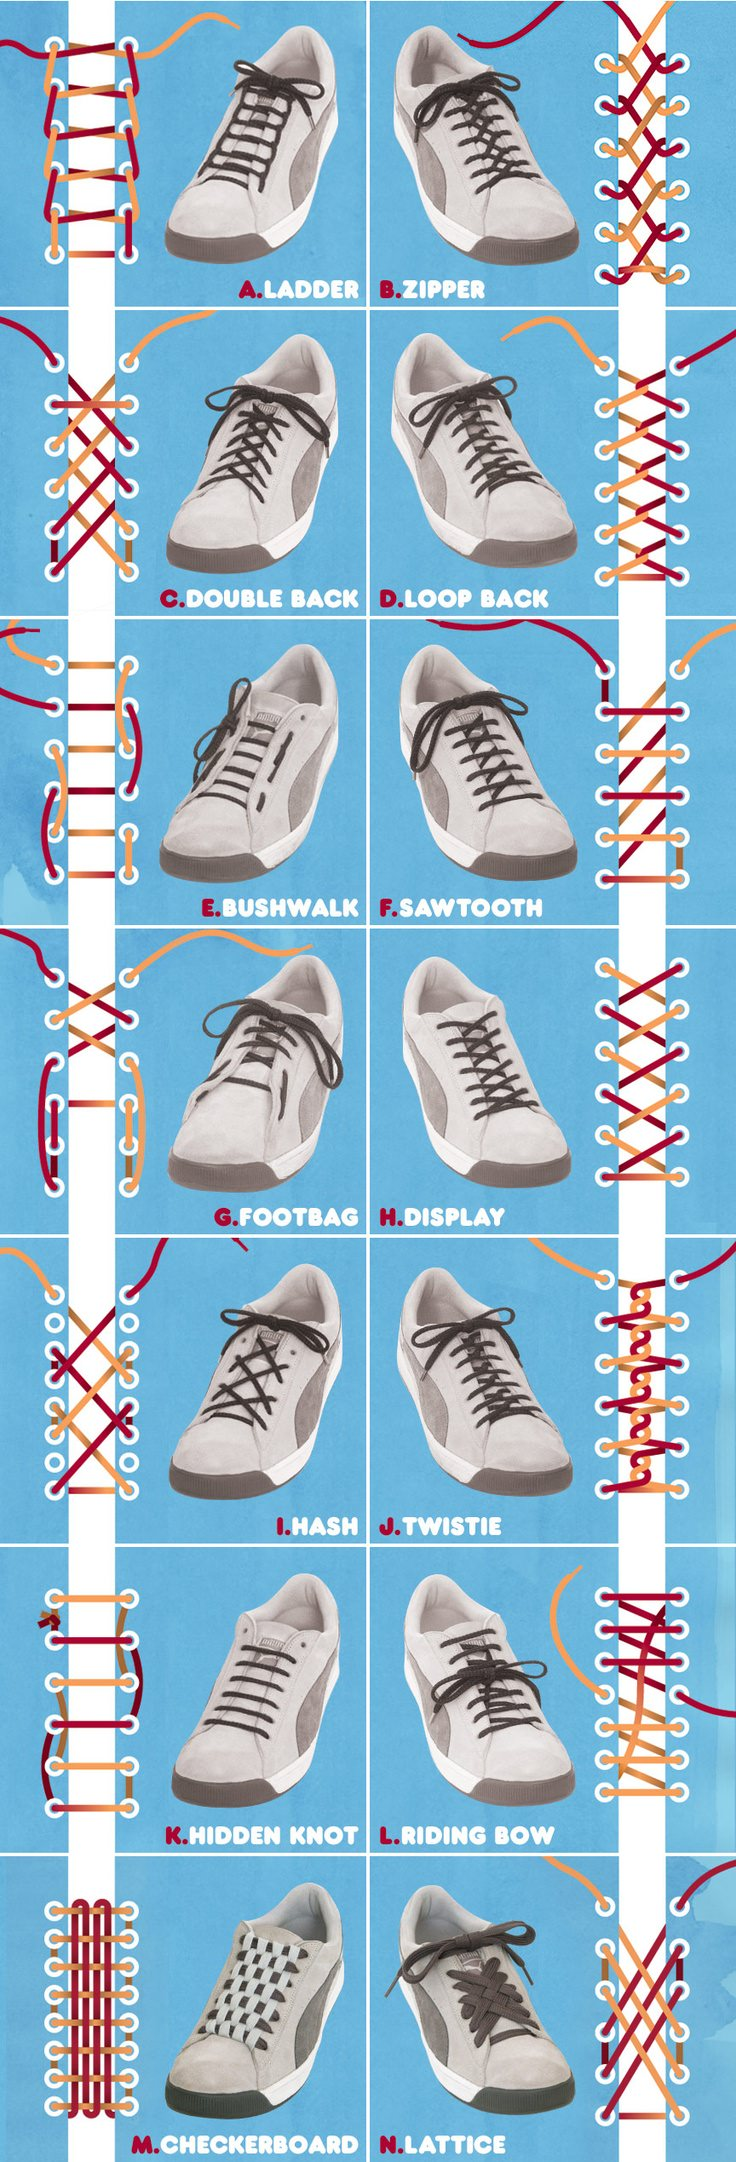 shoe-lacing-methods, different ways to tie shoes knot